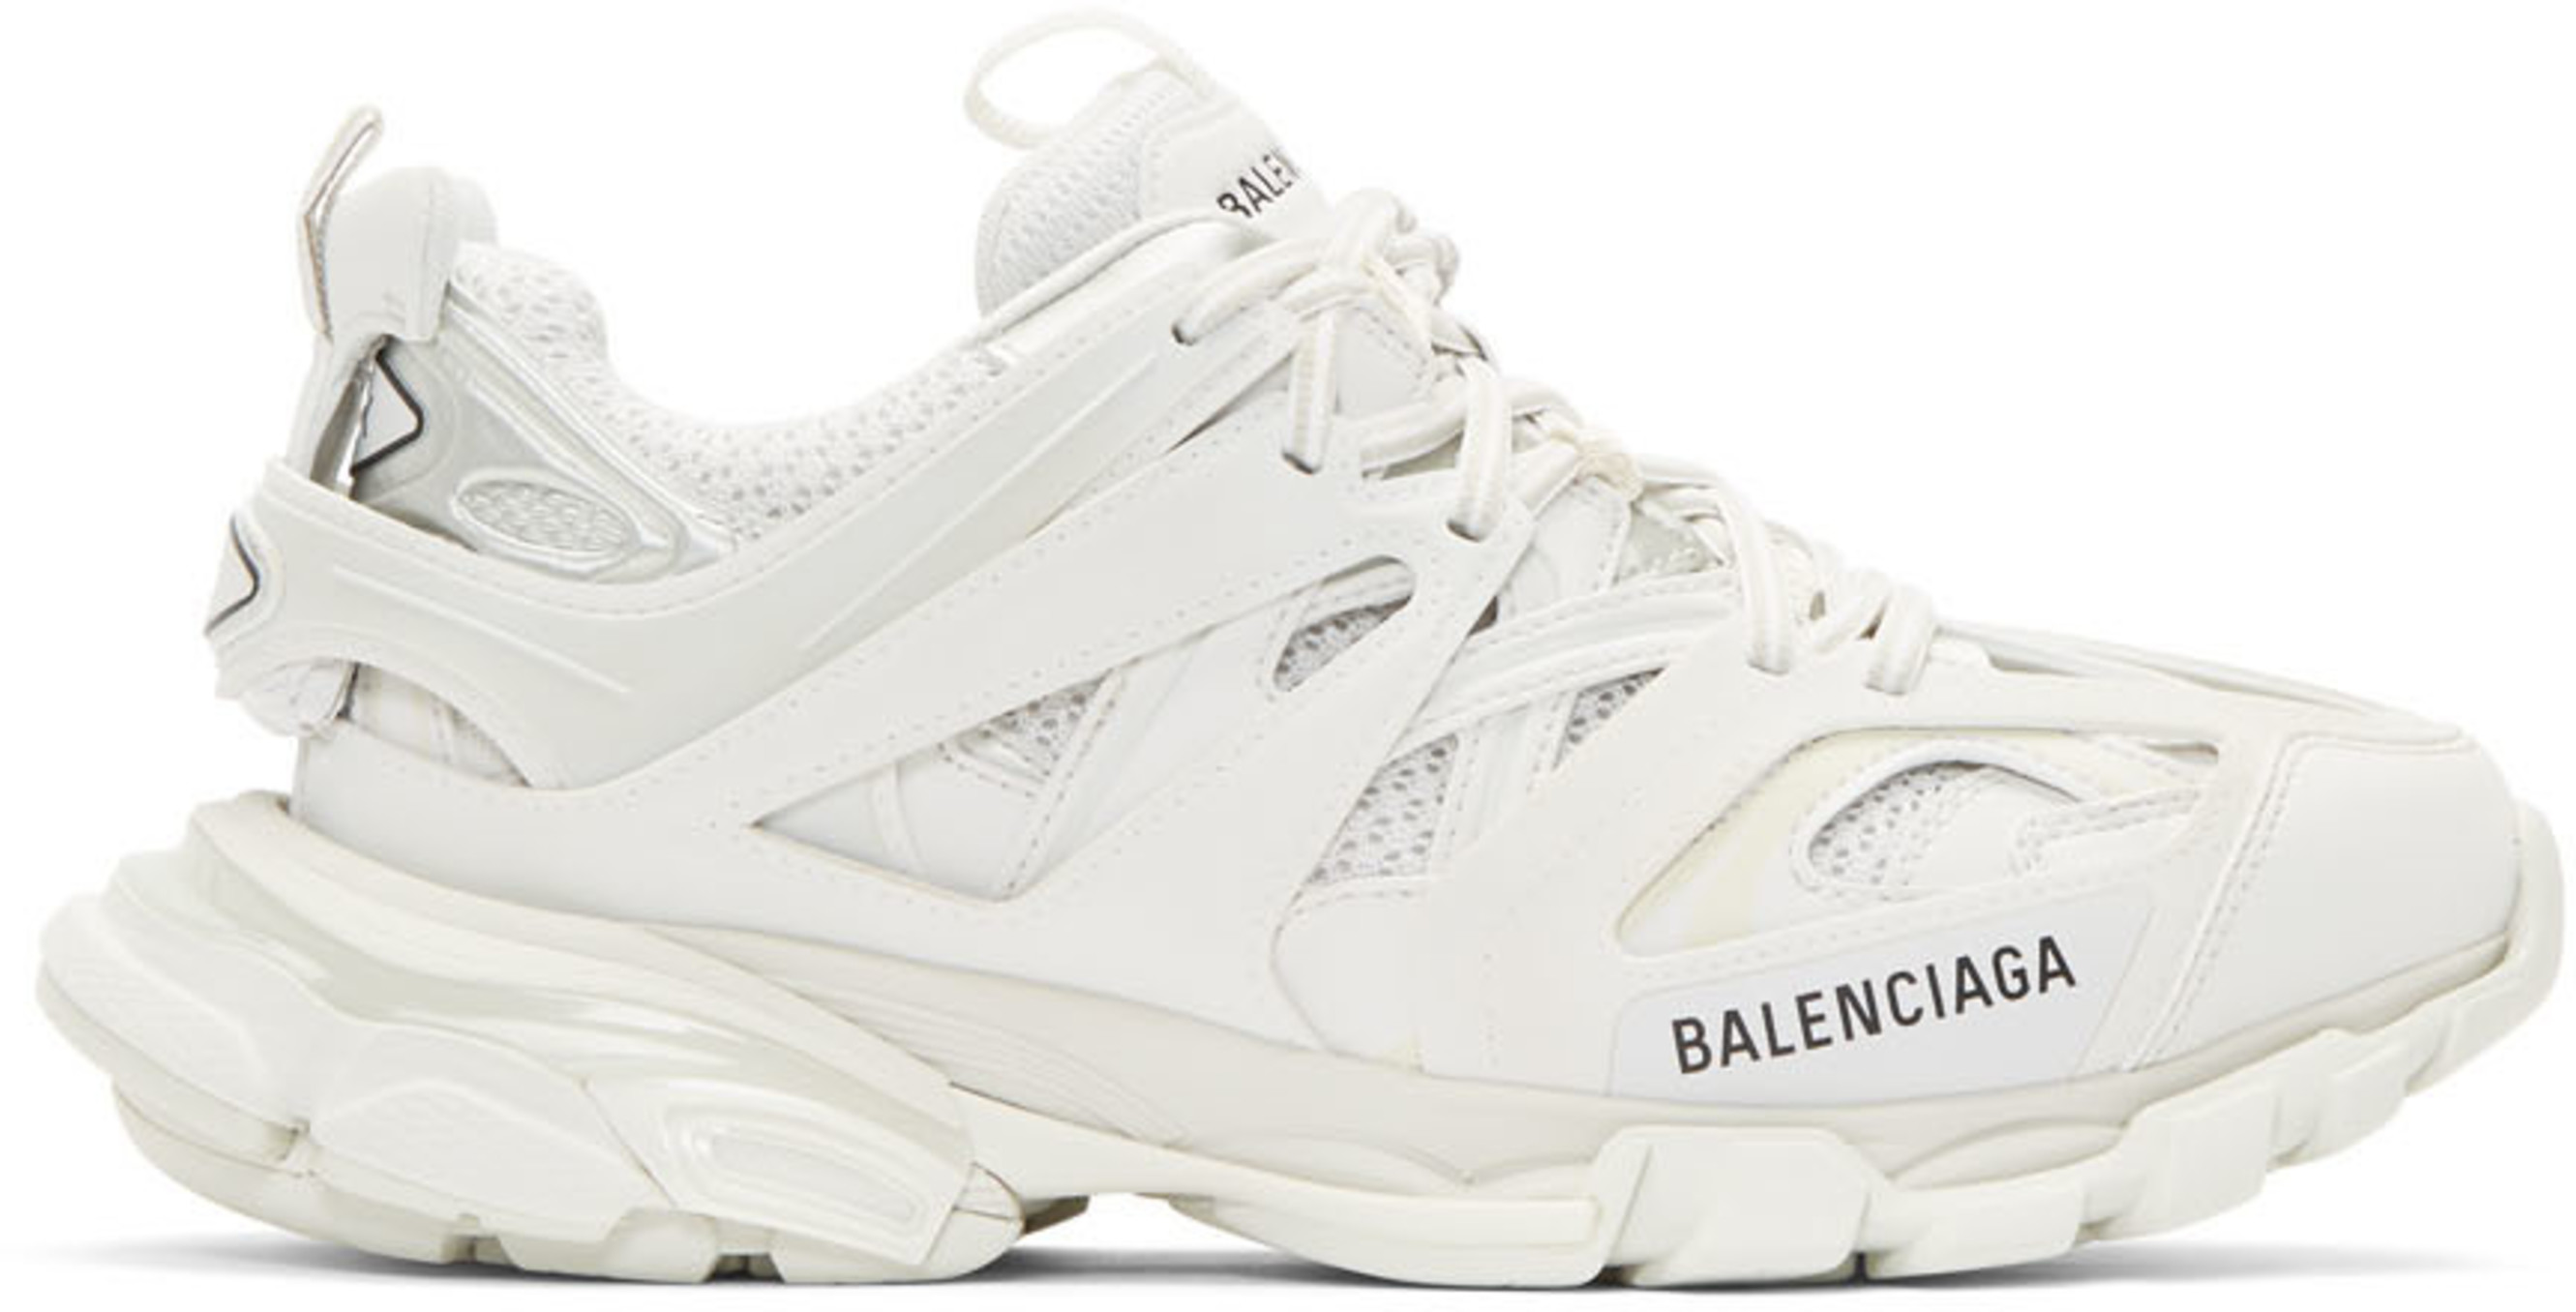 8d1c86bdb1 Balenciaga for Men SS19 Collection | SSENSE